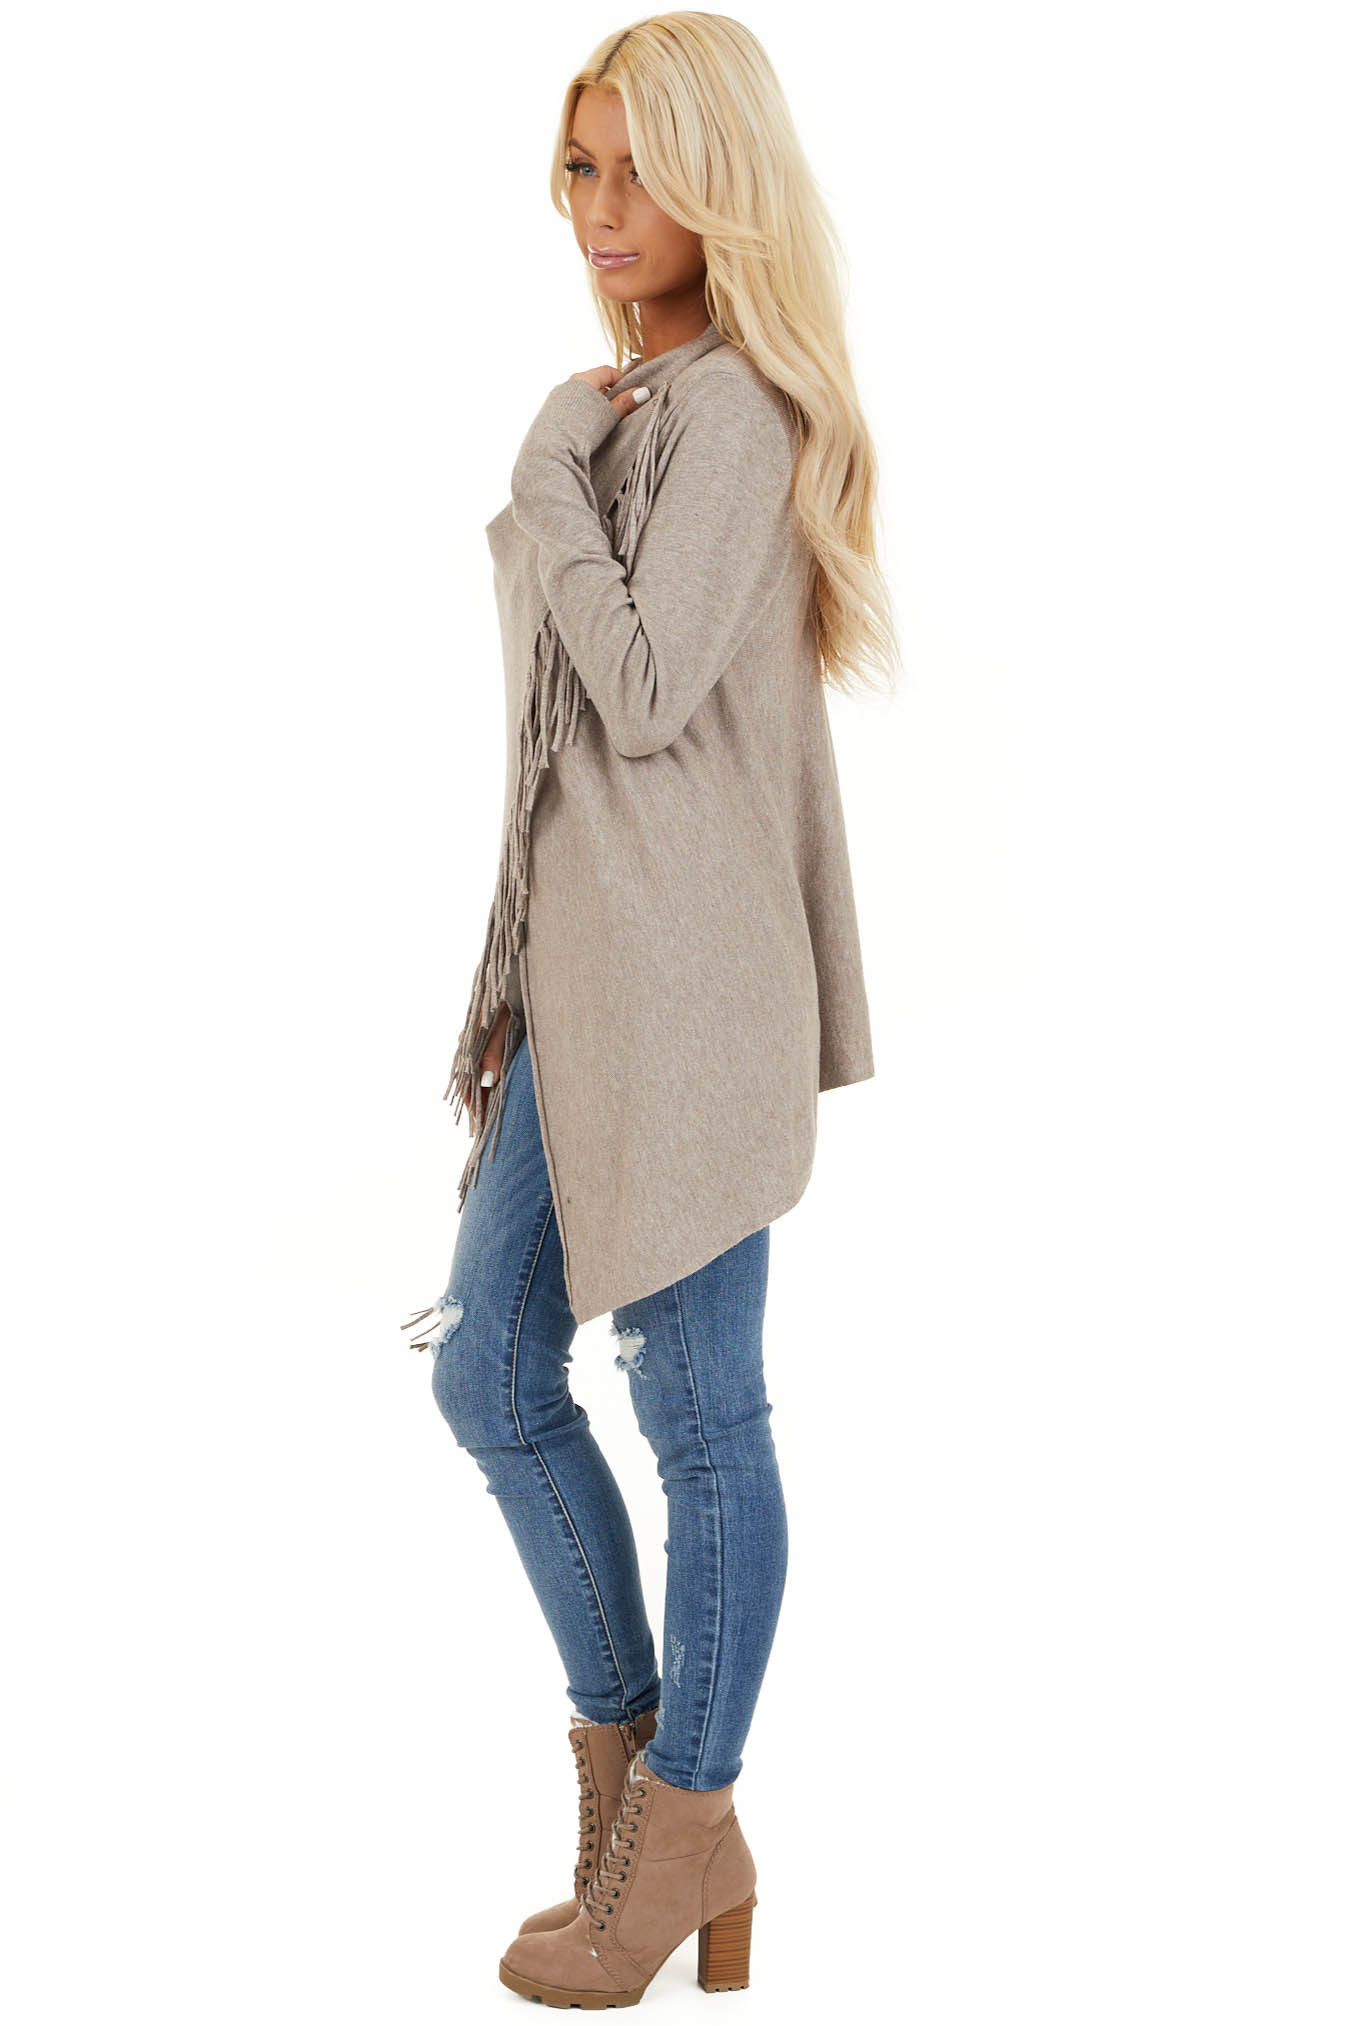 Oatmeal Cowl Neck Knit Poncho with Tassel Details side full body